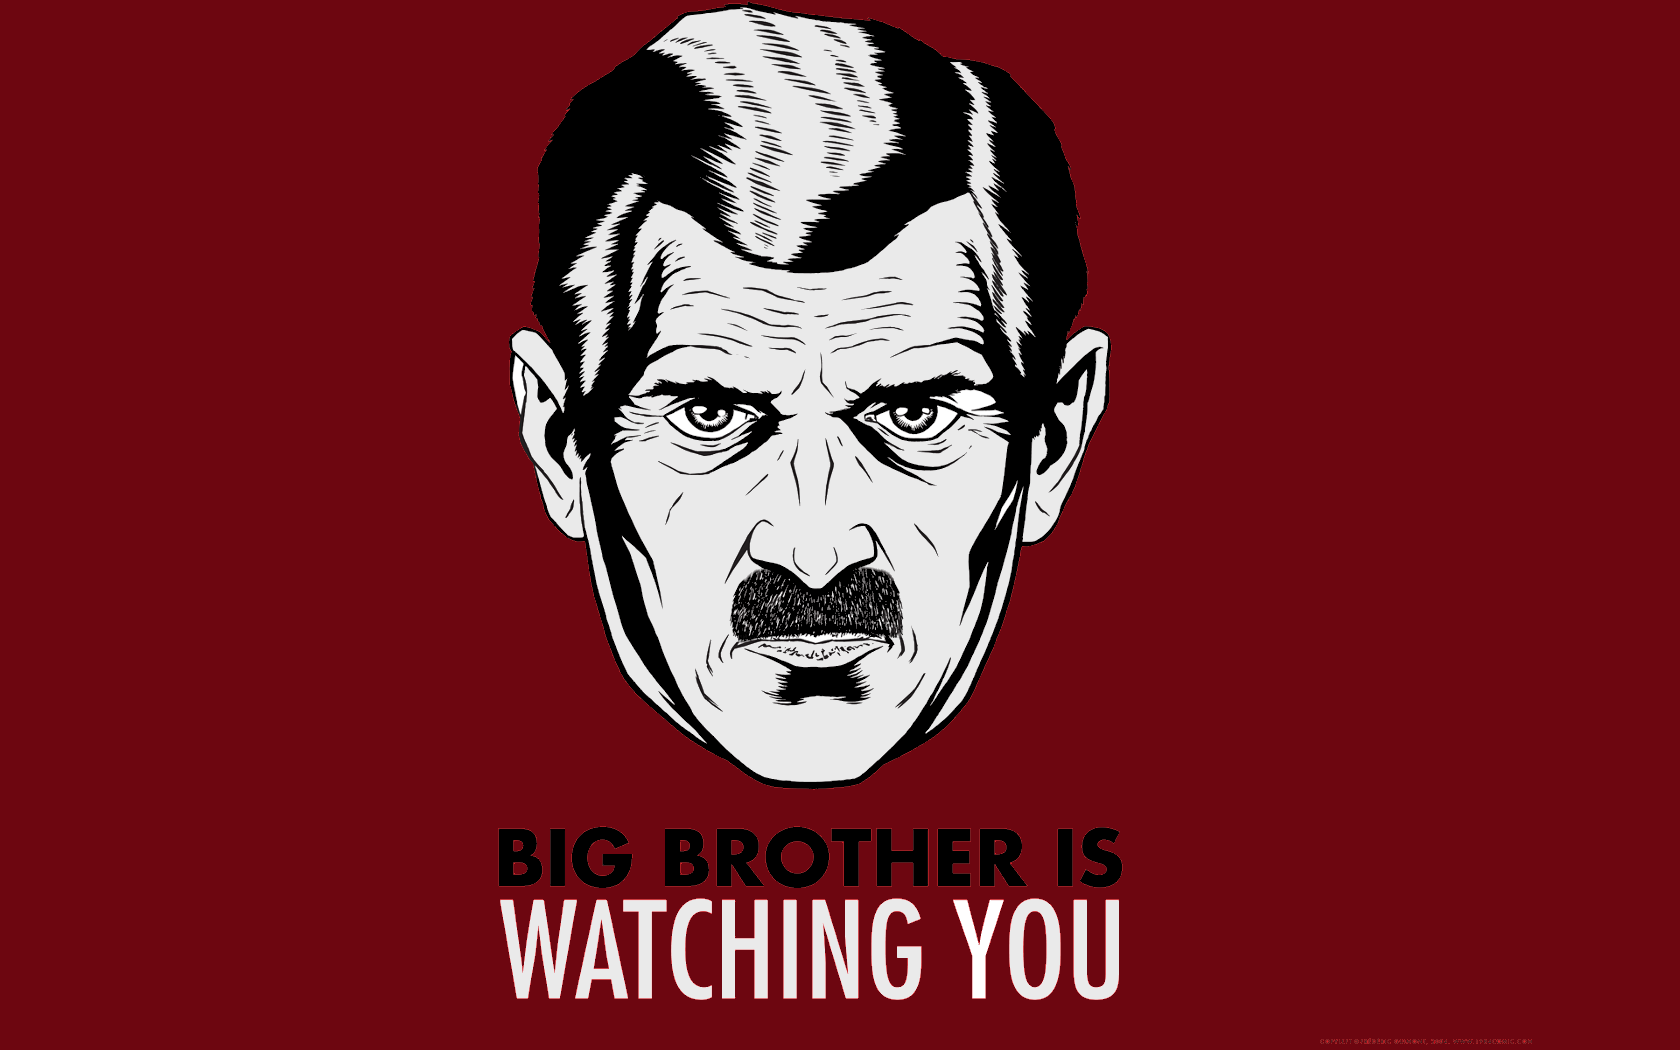 big-brother-is-watching-you-94815124855.png